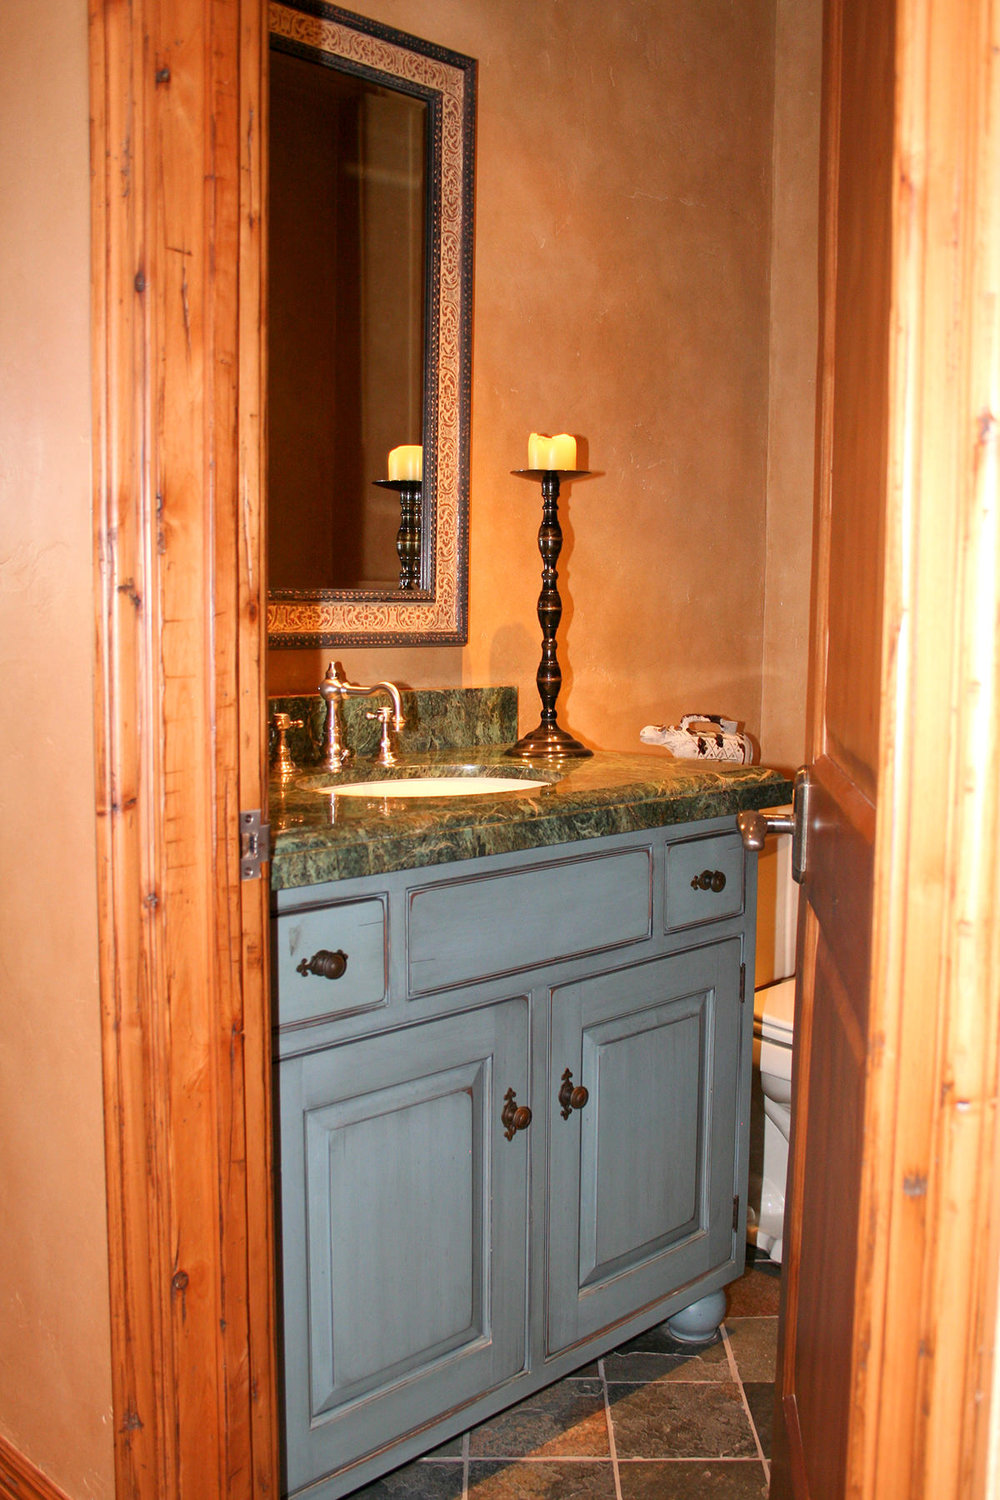 park-city-utah-powder-room-interior-design-montgomery-home-1.jpg